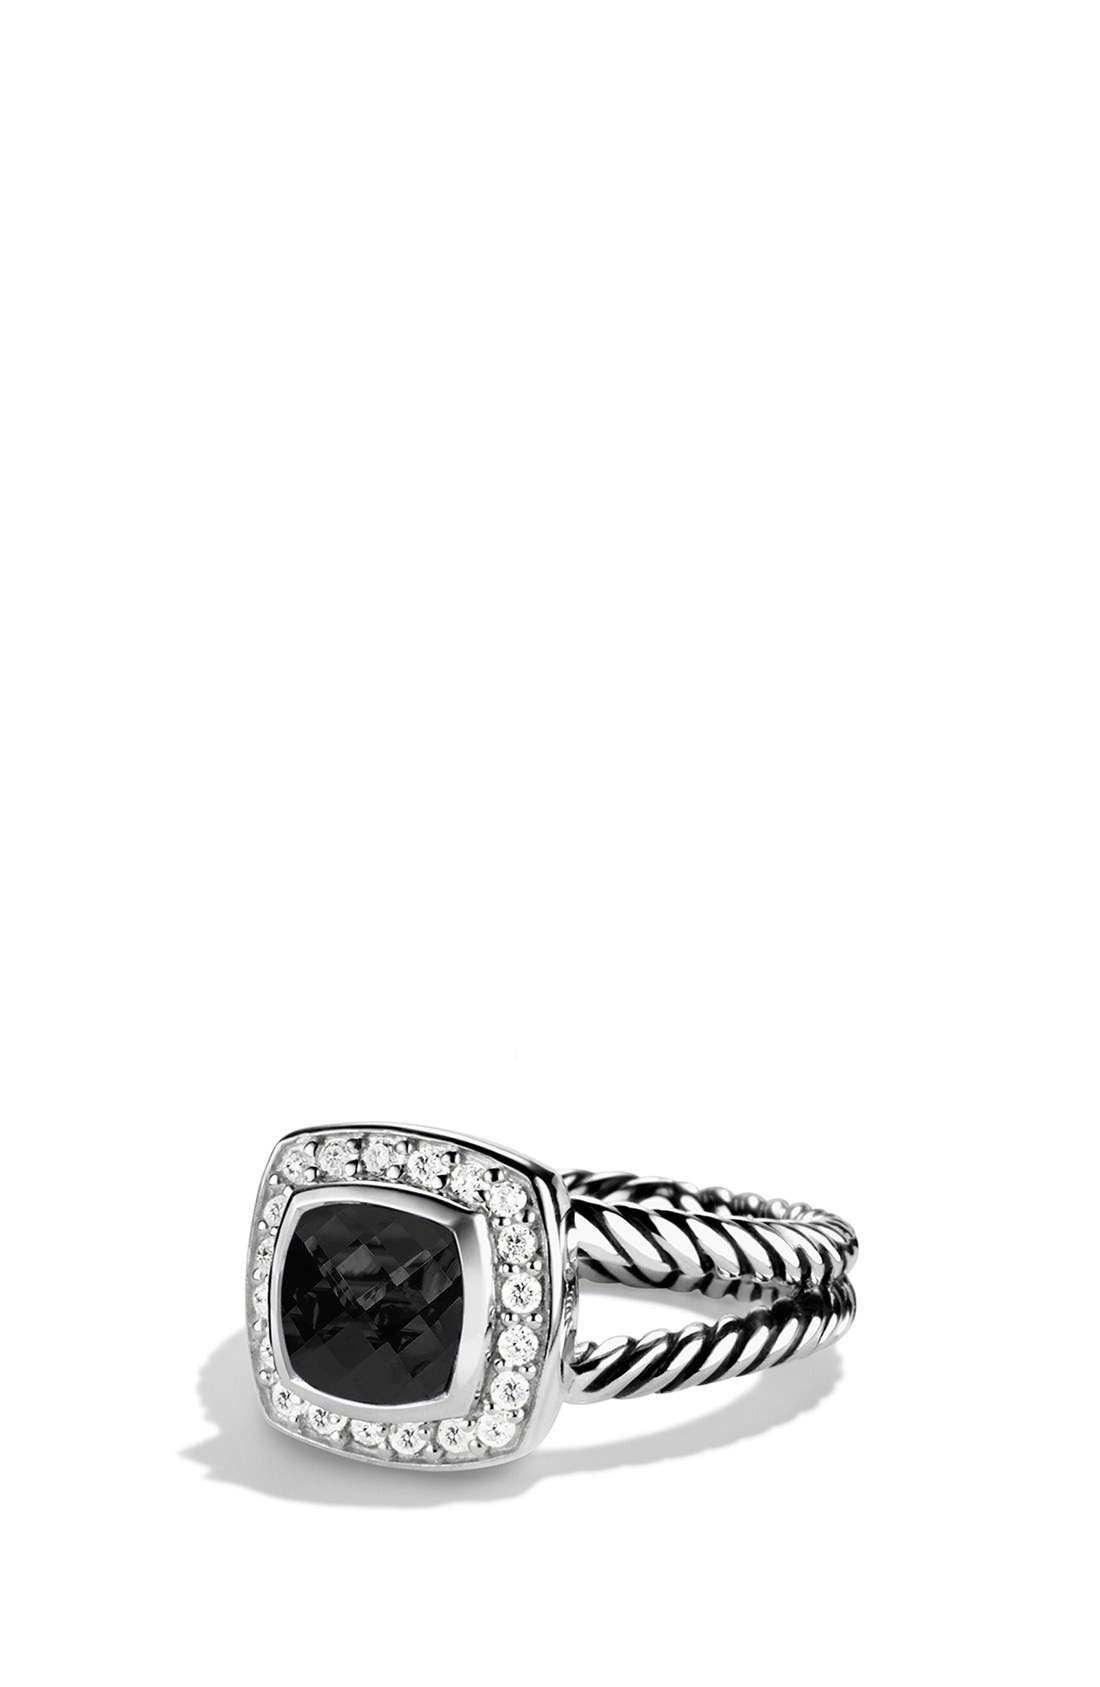 armory signet ring normal yurman jewelry in gallery rings metallic lyst silver for men product silverblack david